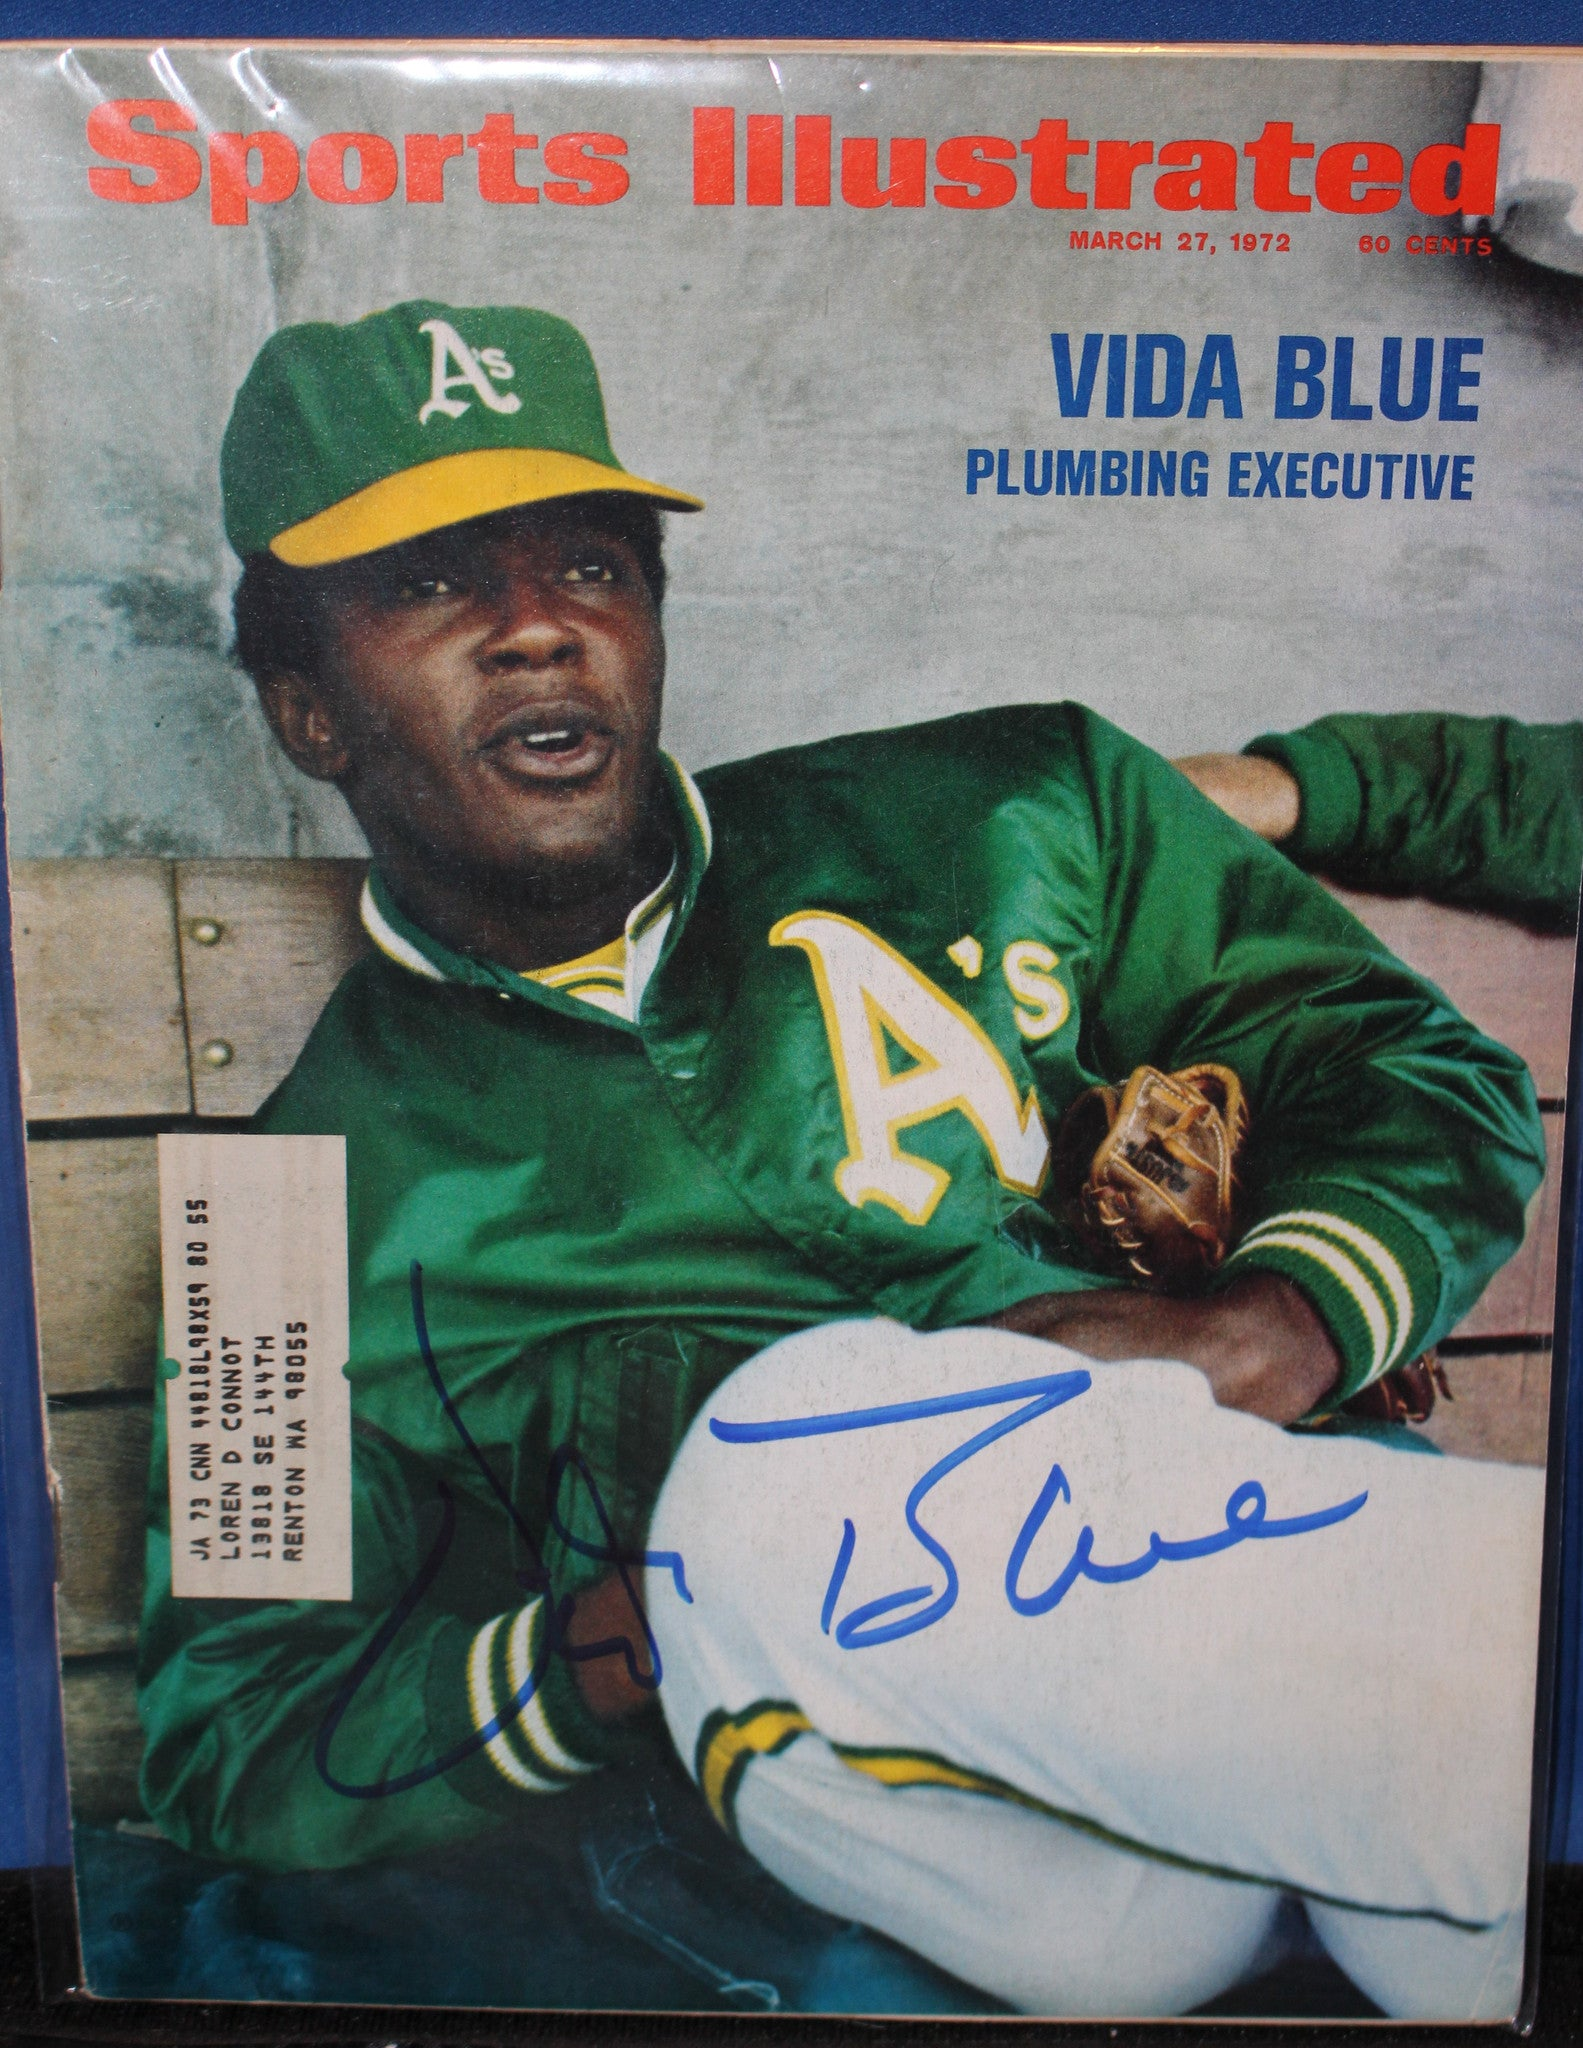 1972 Vida Blue Oakland A's Autographed Sports Illustrated Issue - Vintage Indy Sports